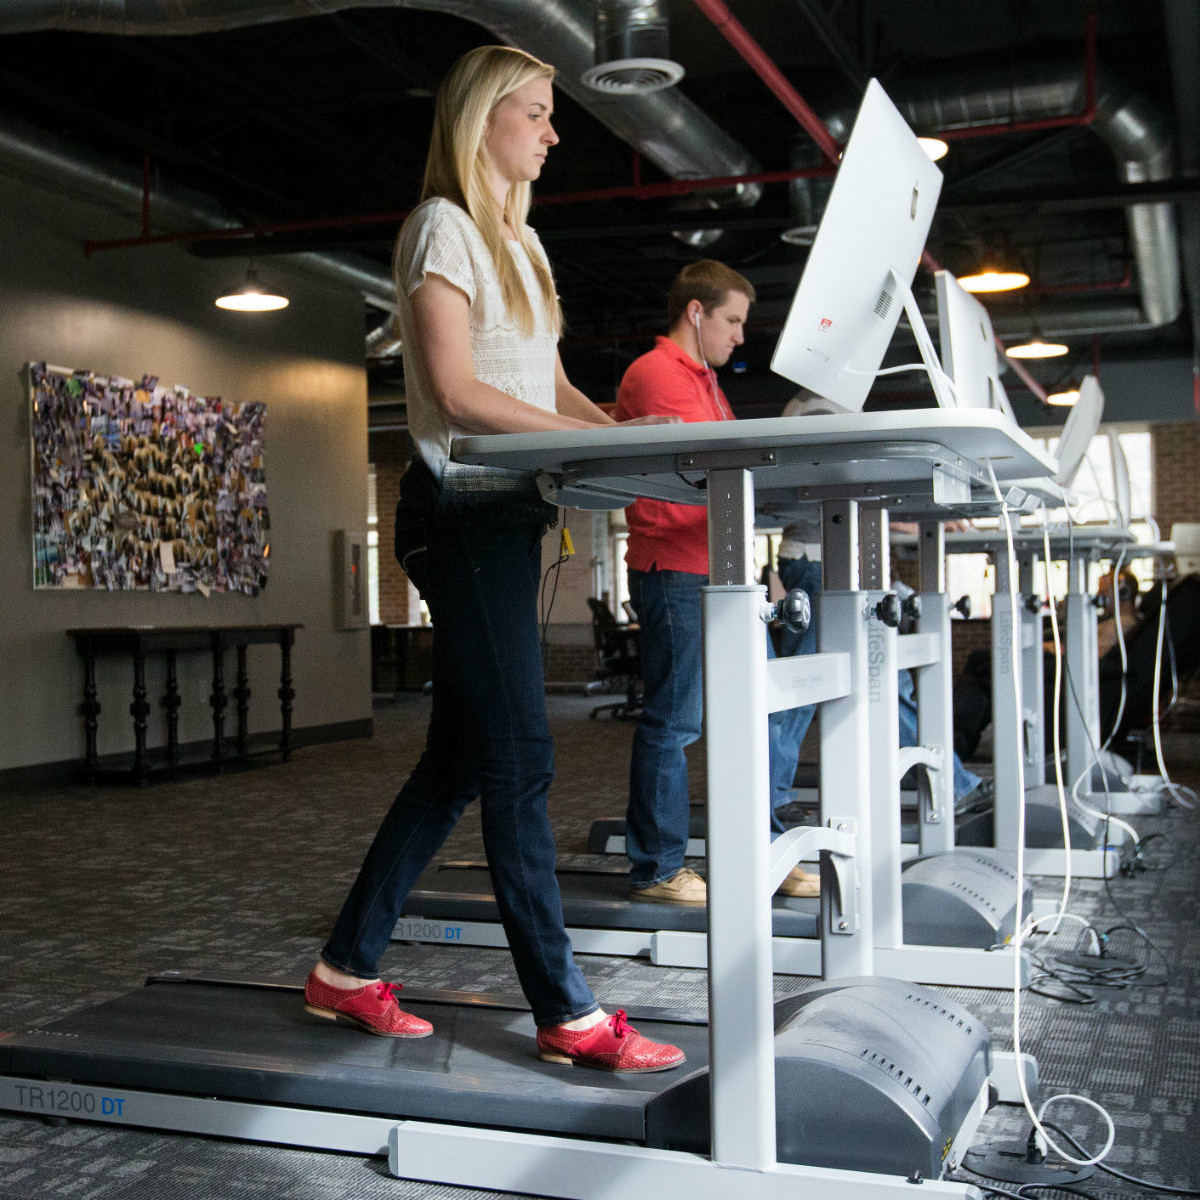 Girl at a treadmill desk